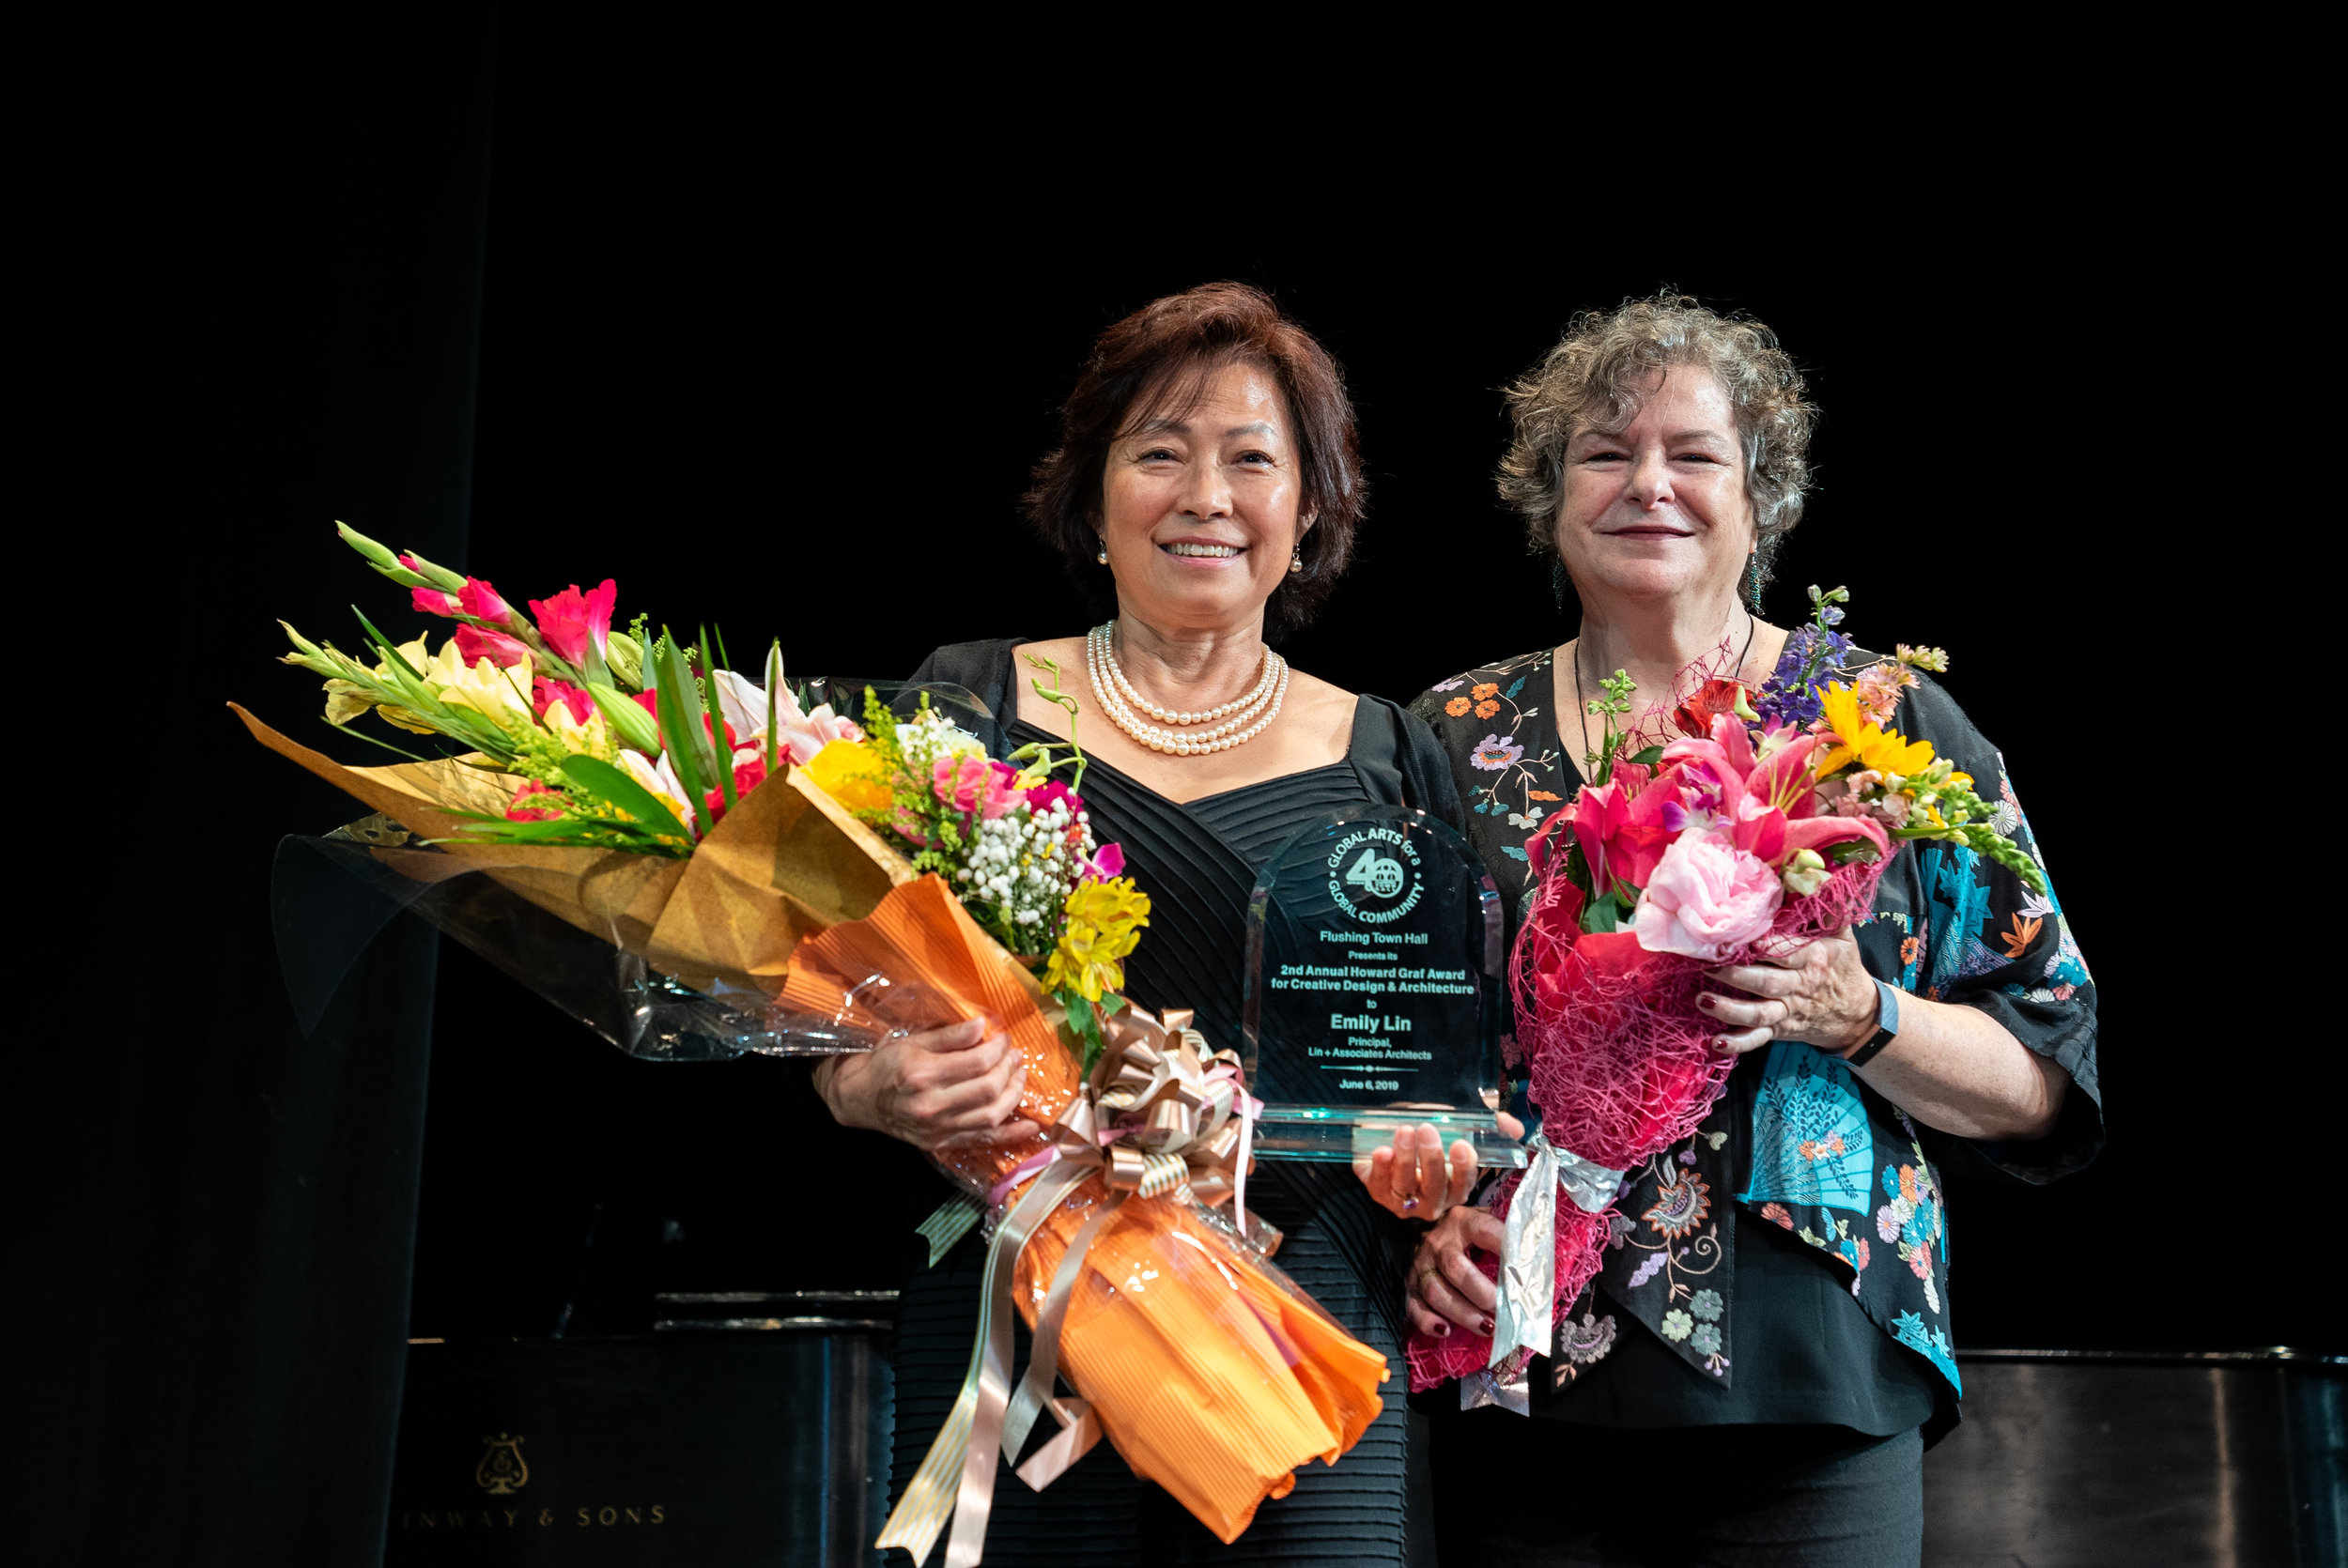 Flushing Town Hall held its 40th annual gala on June 6, 2019. Pictured (left to right) are: Honoree Emily Lin, Principal, Lin + Associates, and Executive and Artistic Director Ellen Kodadek.